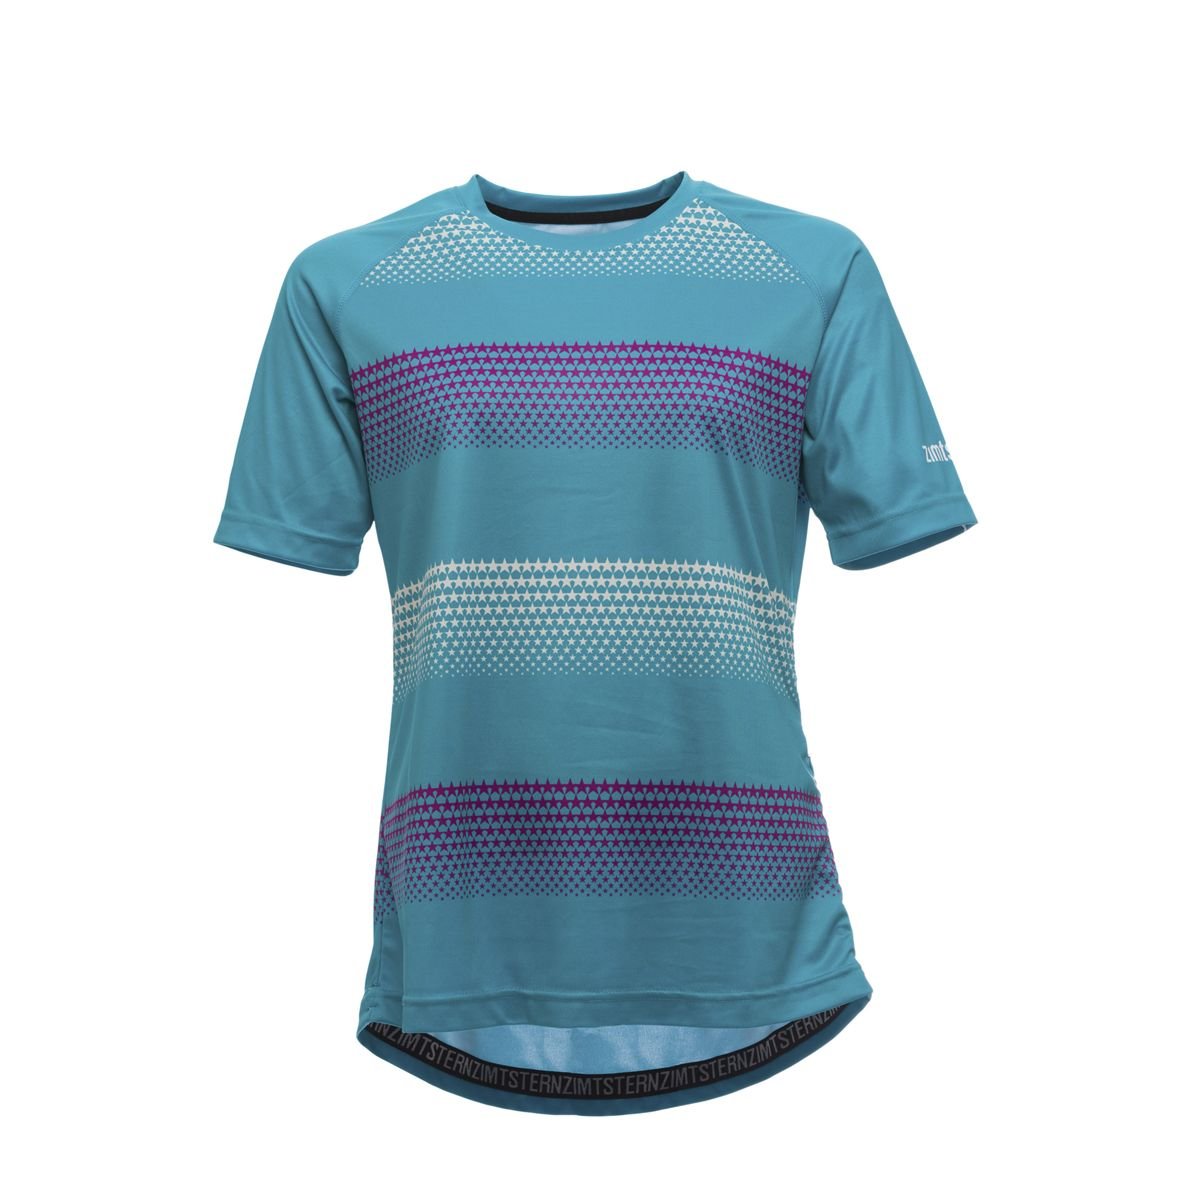 ZELDAZZ women's cycling shirt